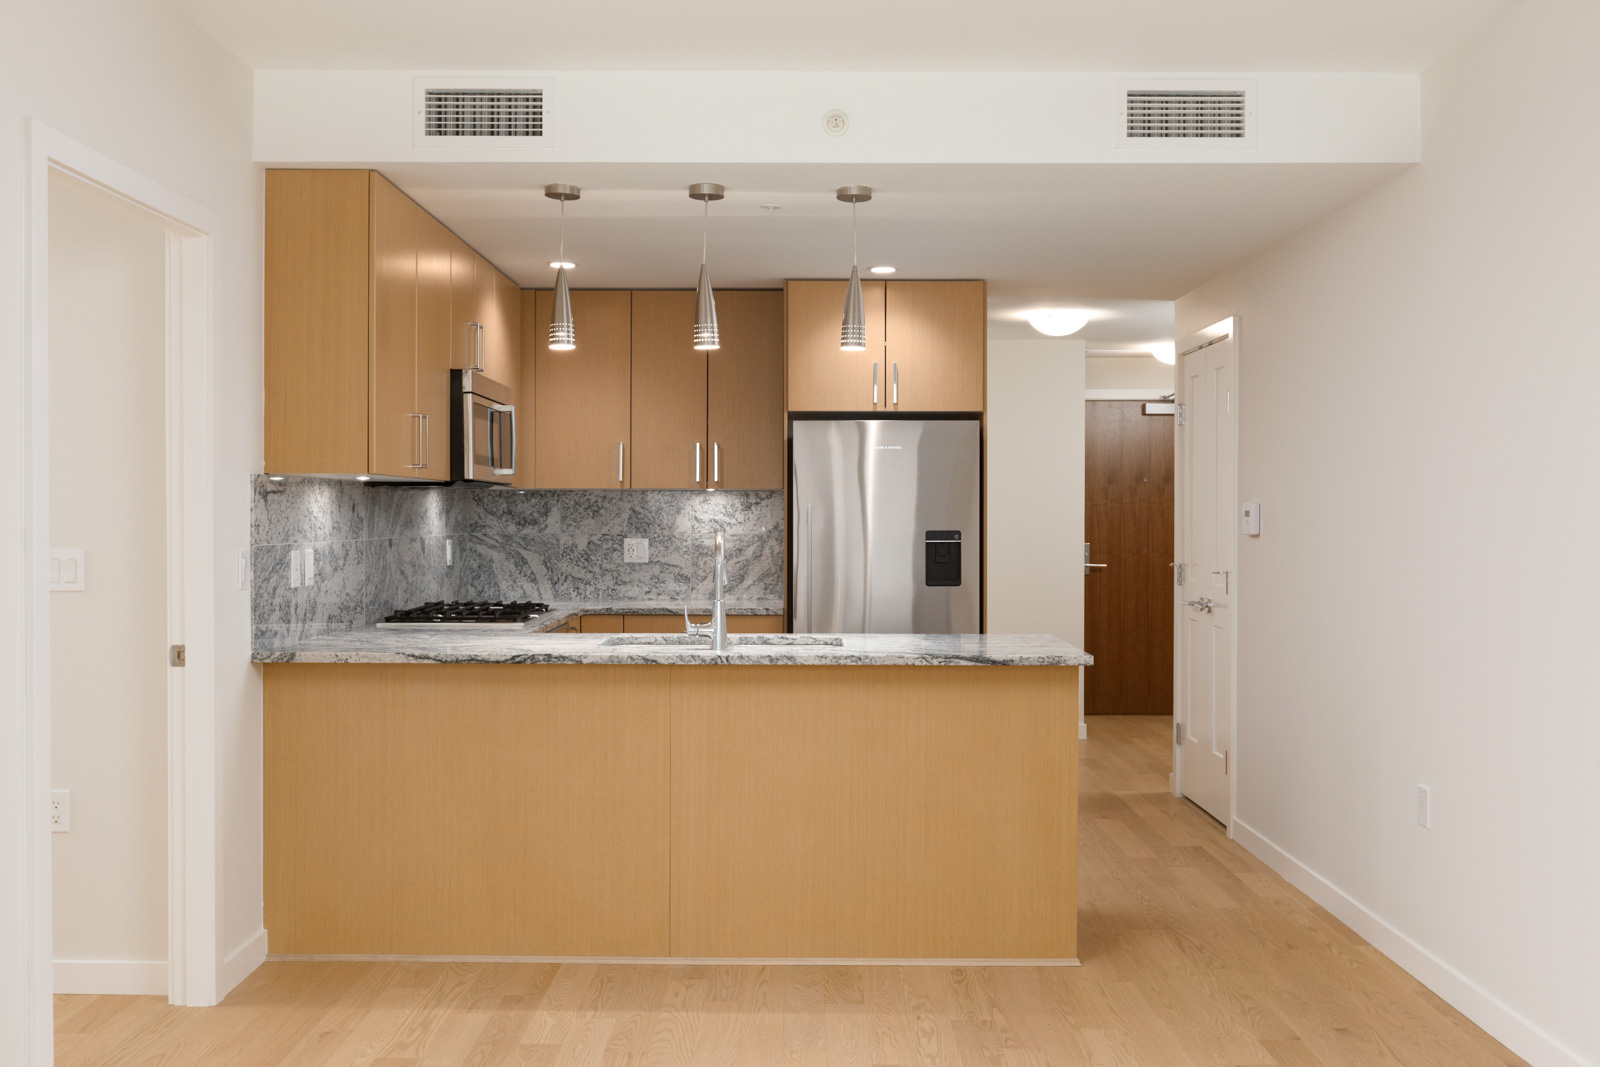 open kitchen in rental condo with wood cabinets and pendant lights